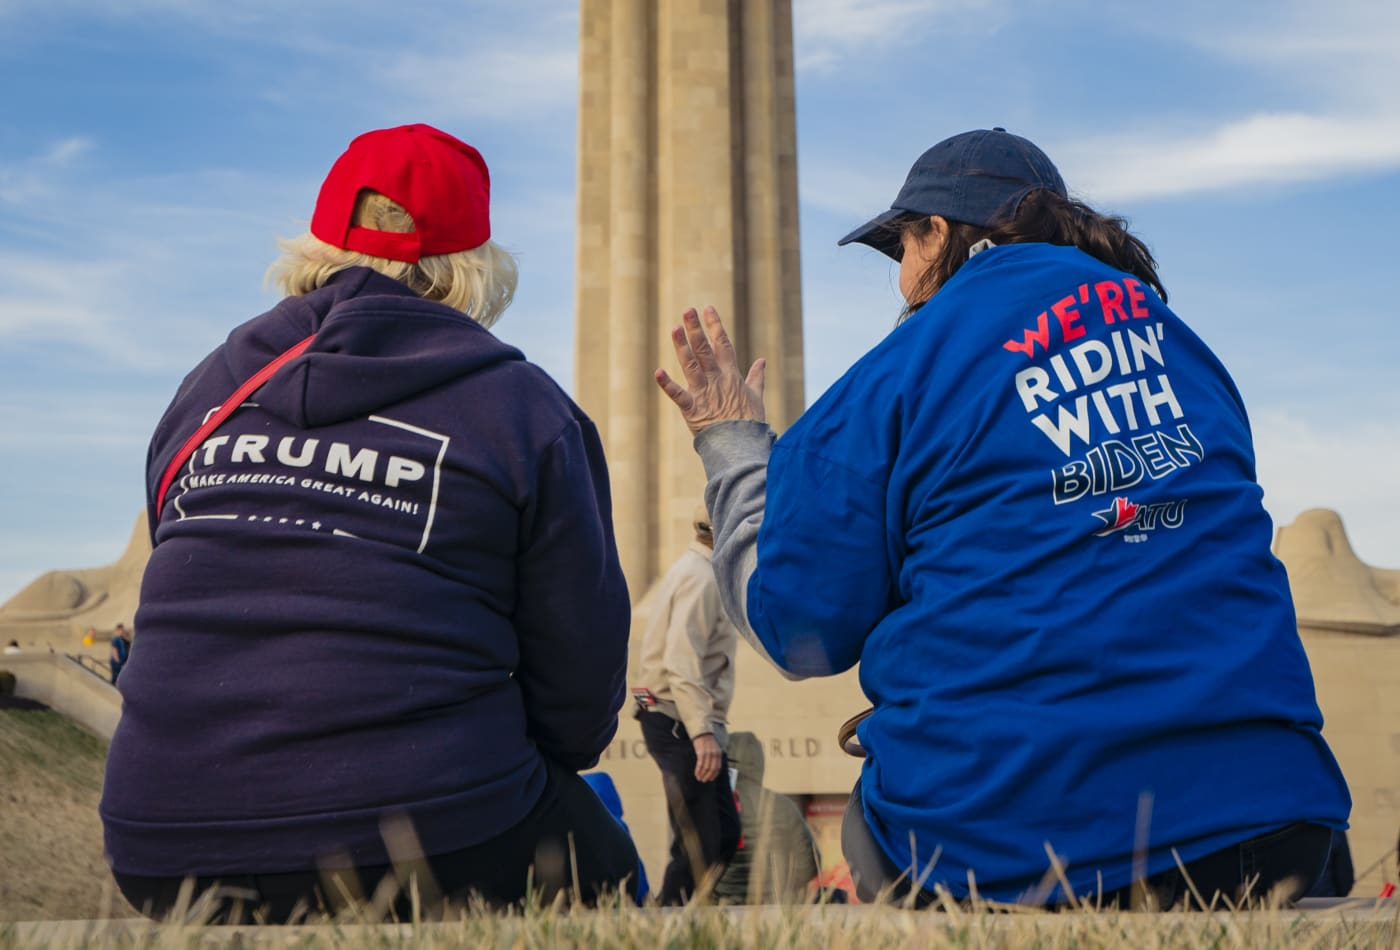 The economy, Covid-19 and racial inequality are voters' top concerns ahead of the first Trump-Biden debate